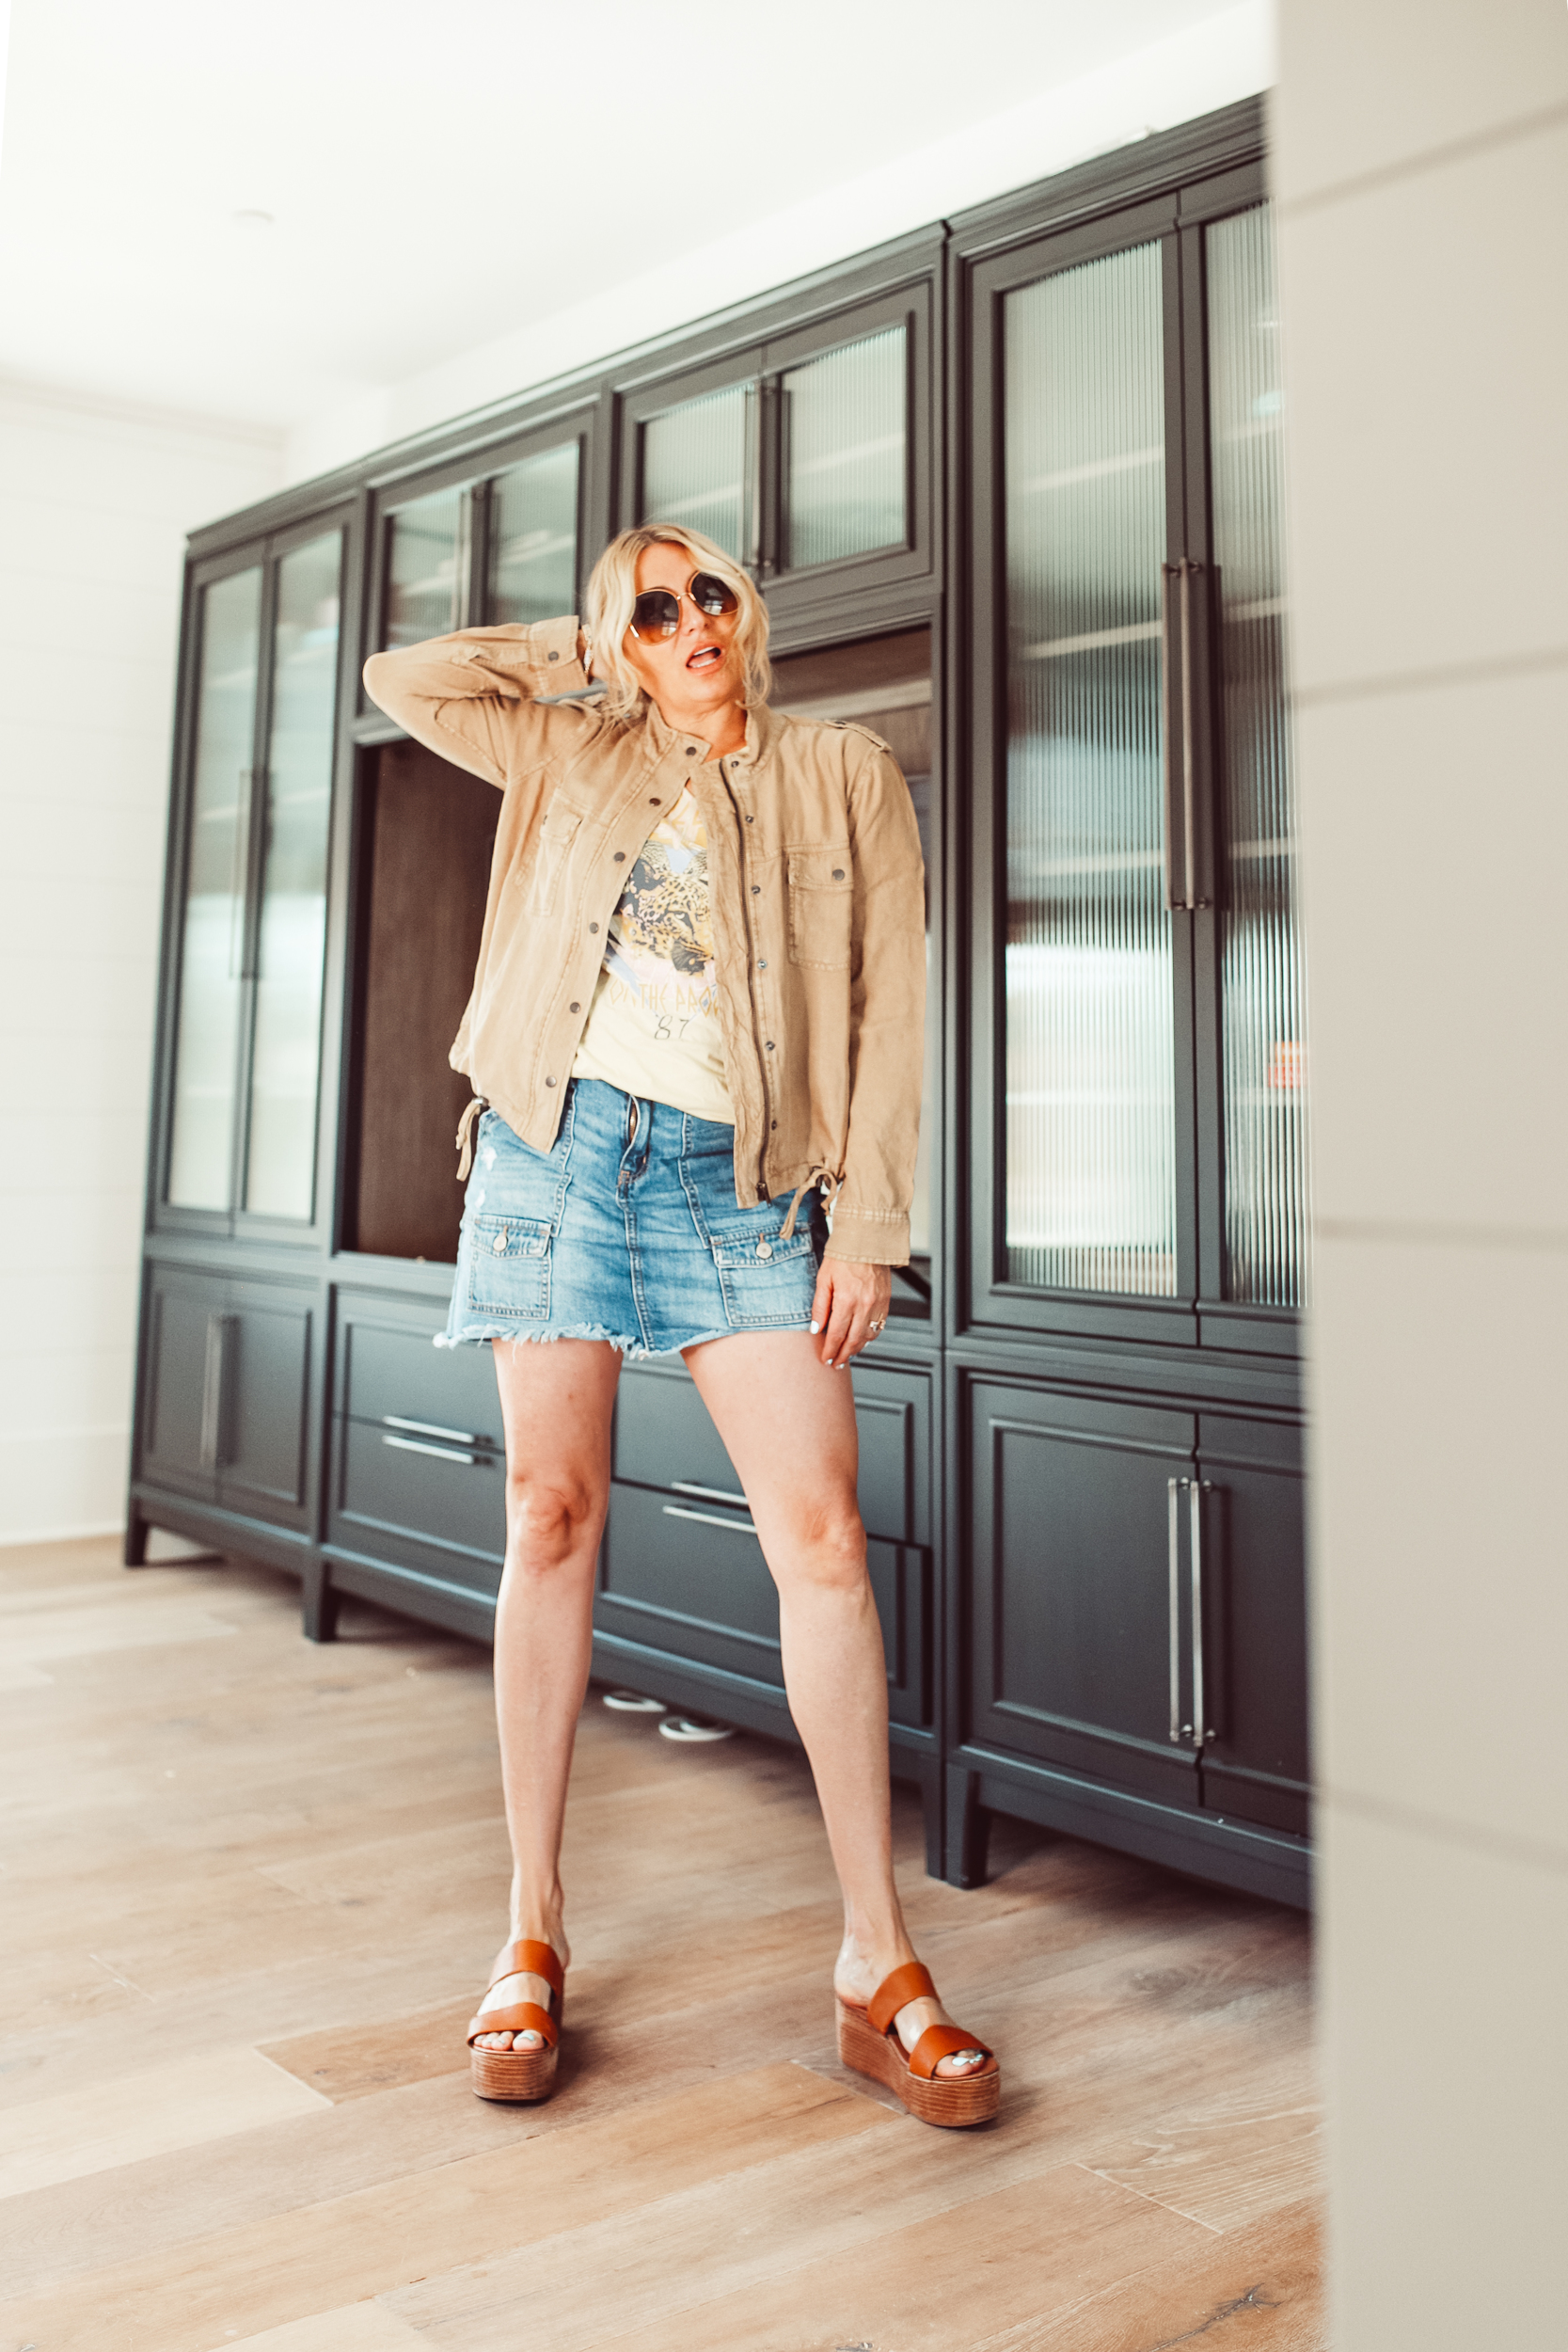 cool woman in stylish outfit